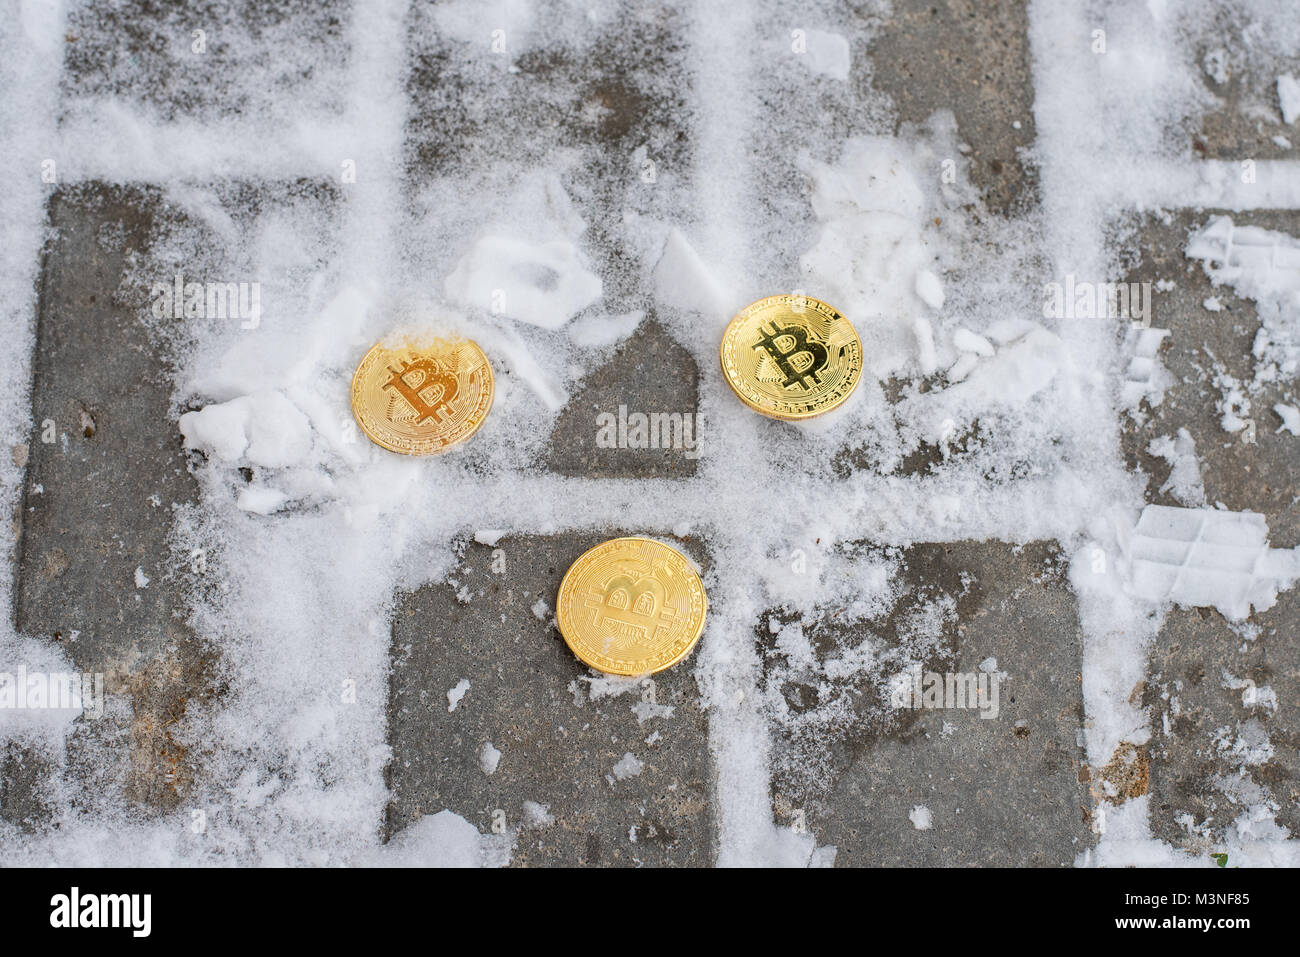 Crypto currency bitcoin, gold coins lie on asphalt in winter in white snow. Lost money on the street. - Stock Image